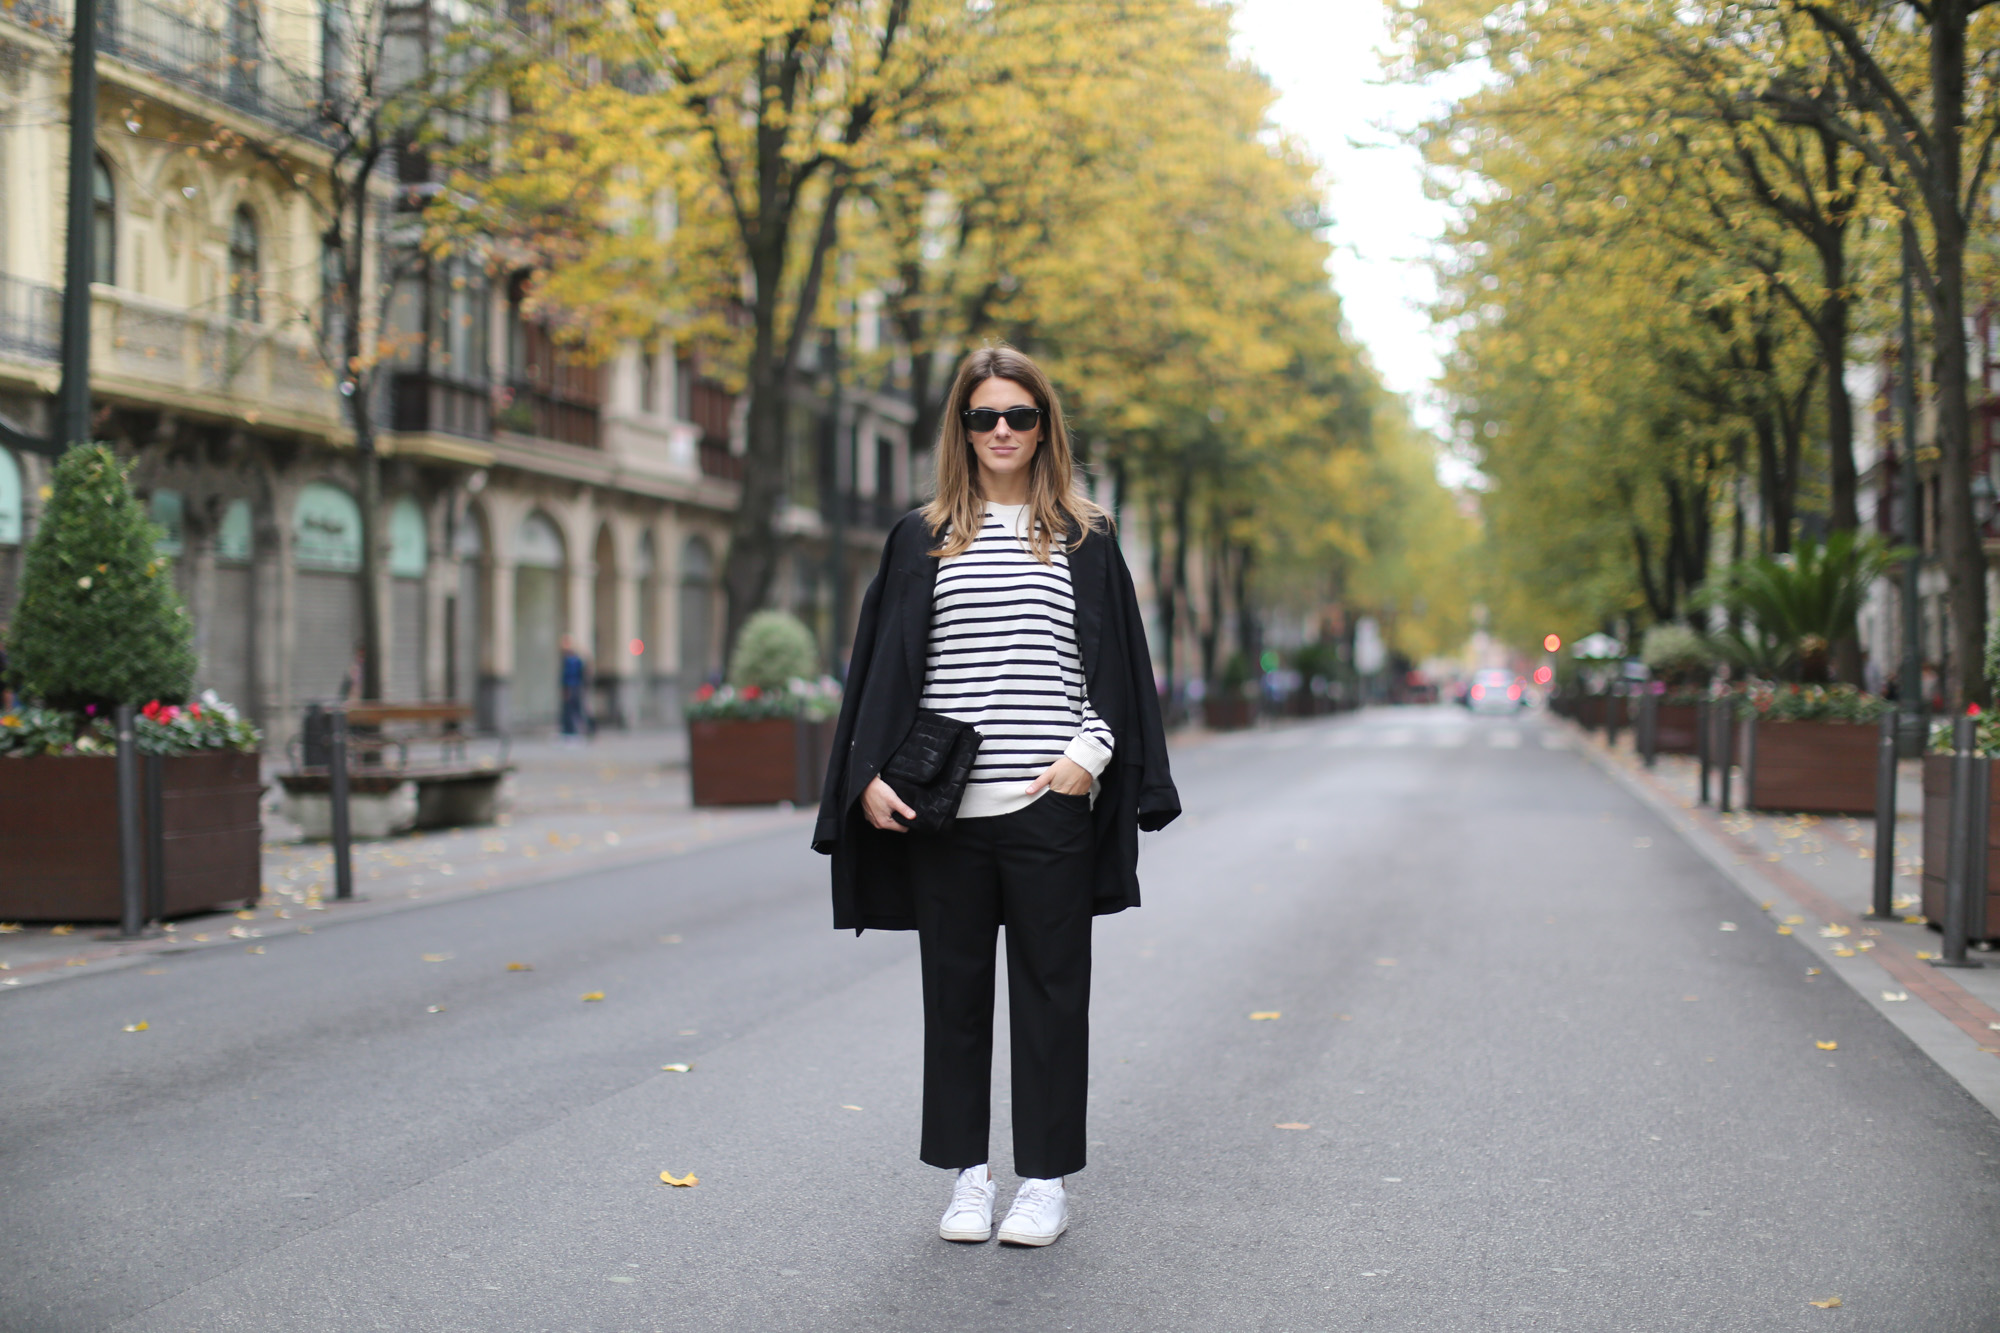 Clochet-streetstyle-zara-suit-cropped-trousers-adidas-stan-smith-everie-cph-bag-2